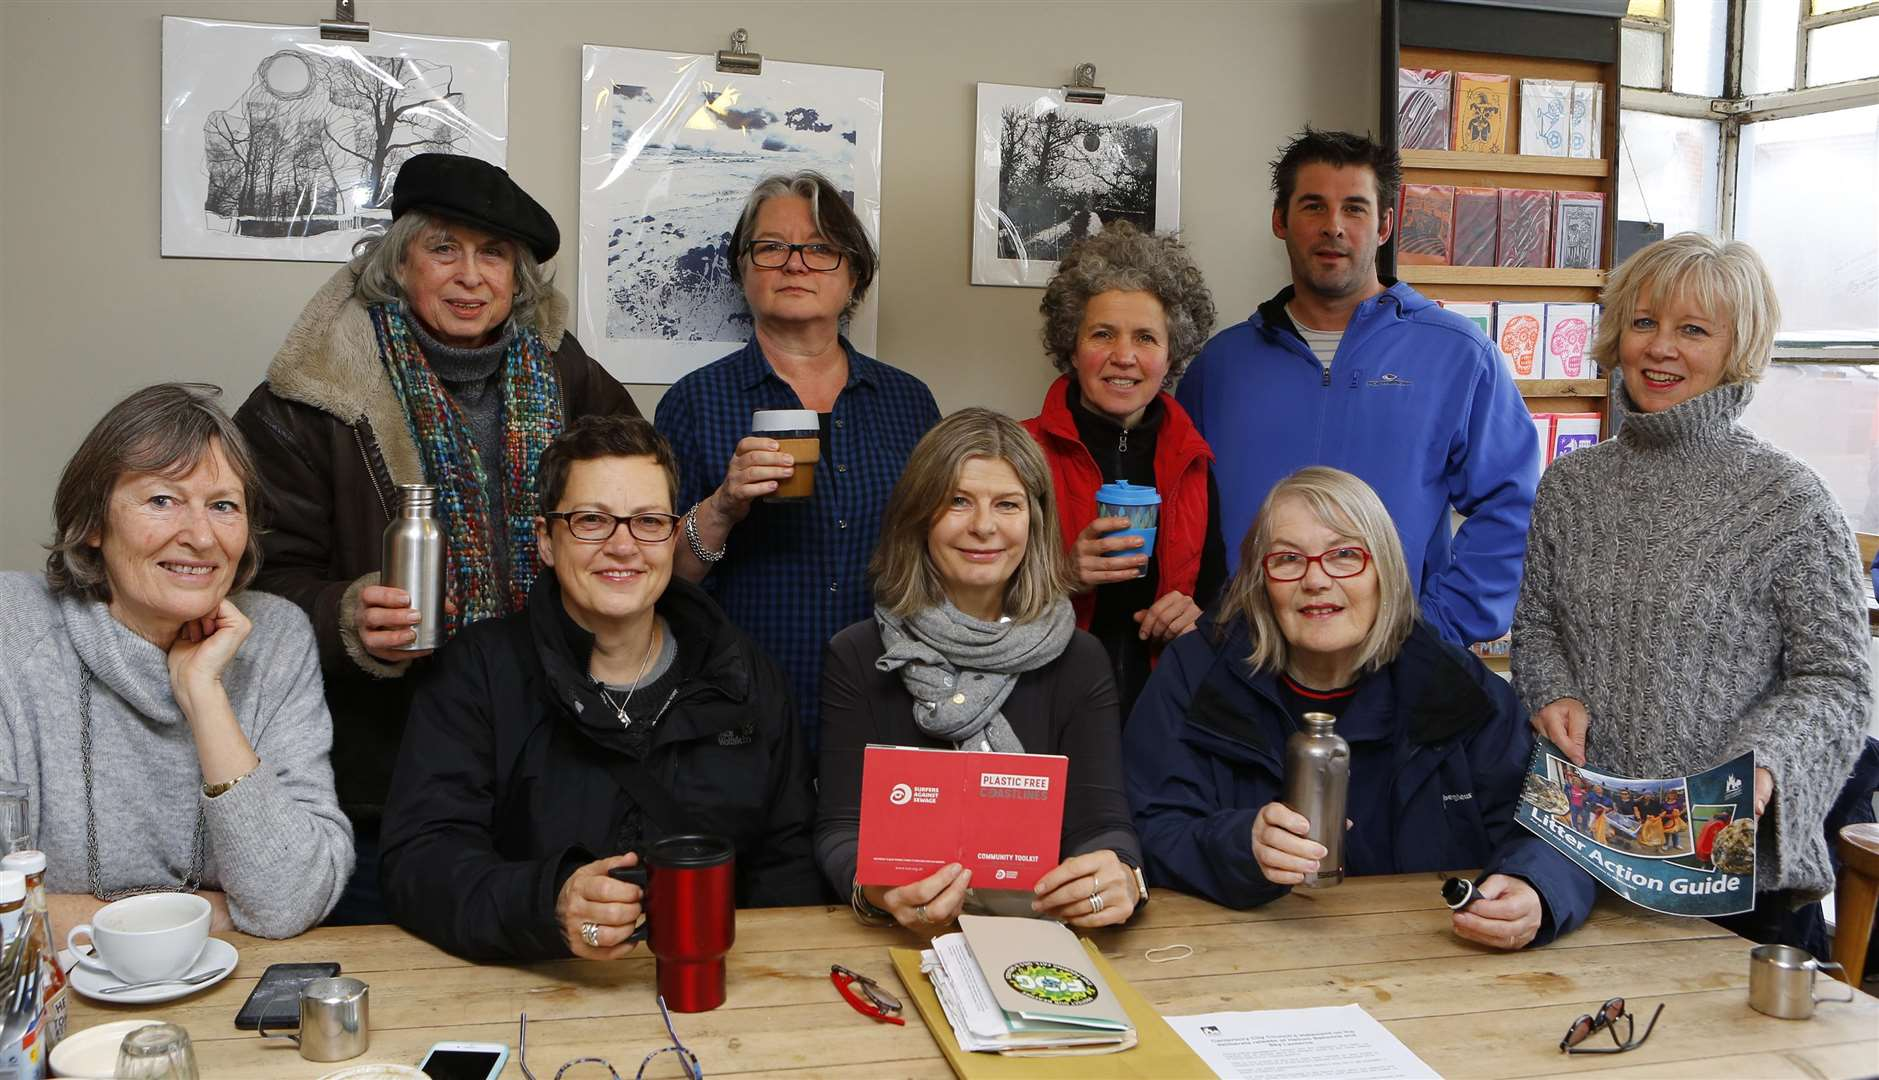 Founding members of Plastic Free Whitstable